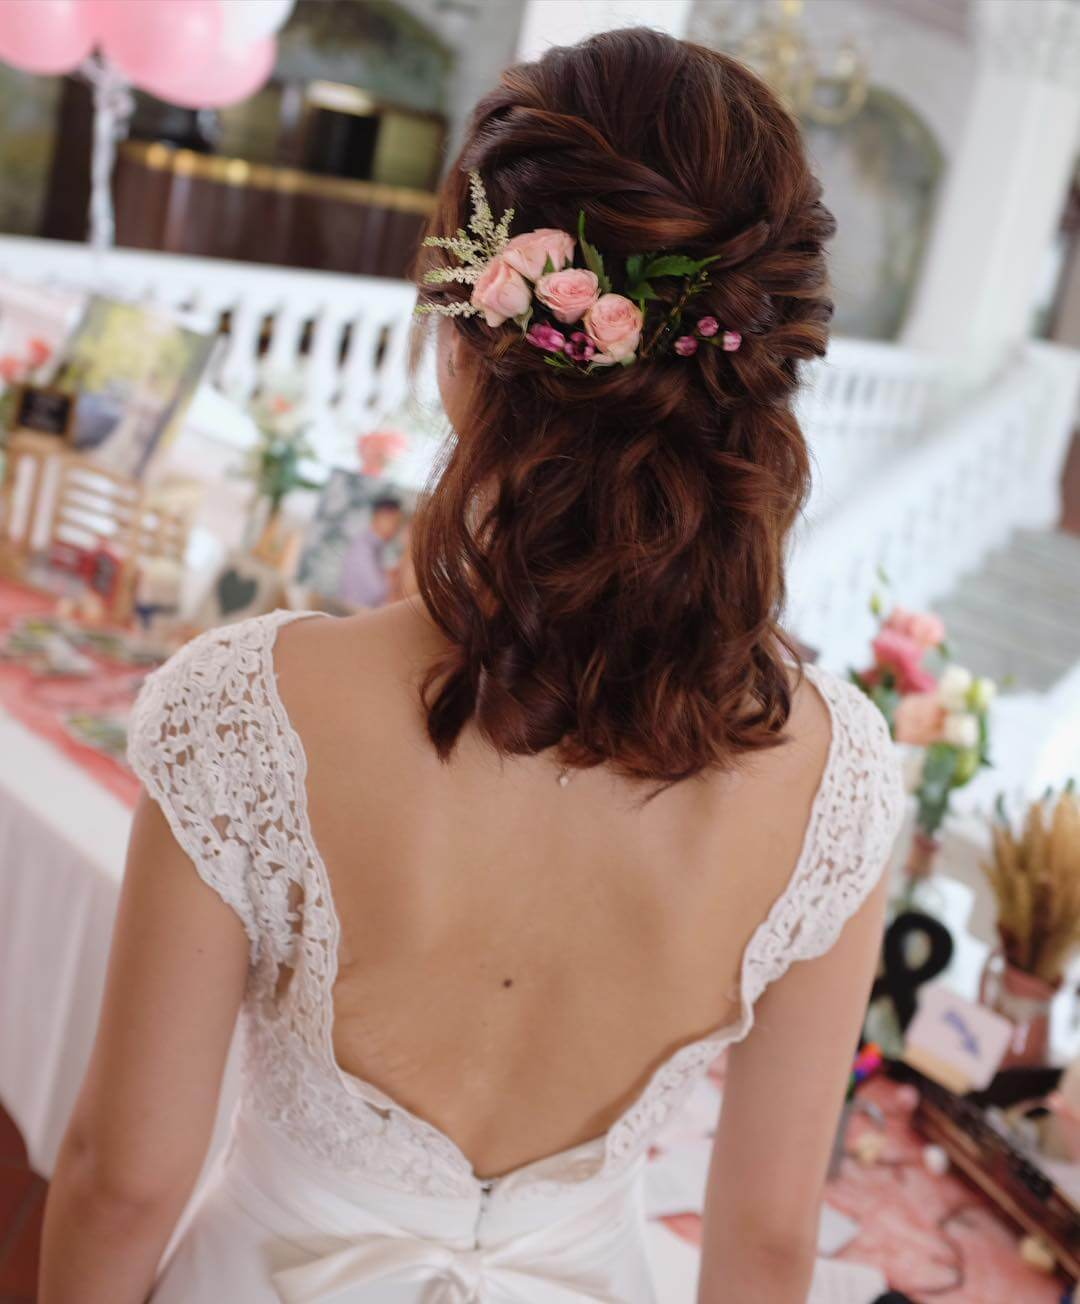 25 Curly Wedding Hairstyle Ideas Designs Design Trends